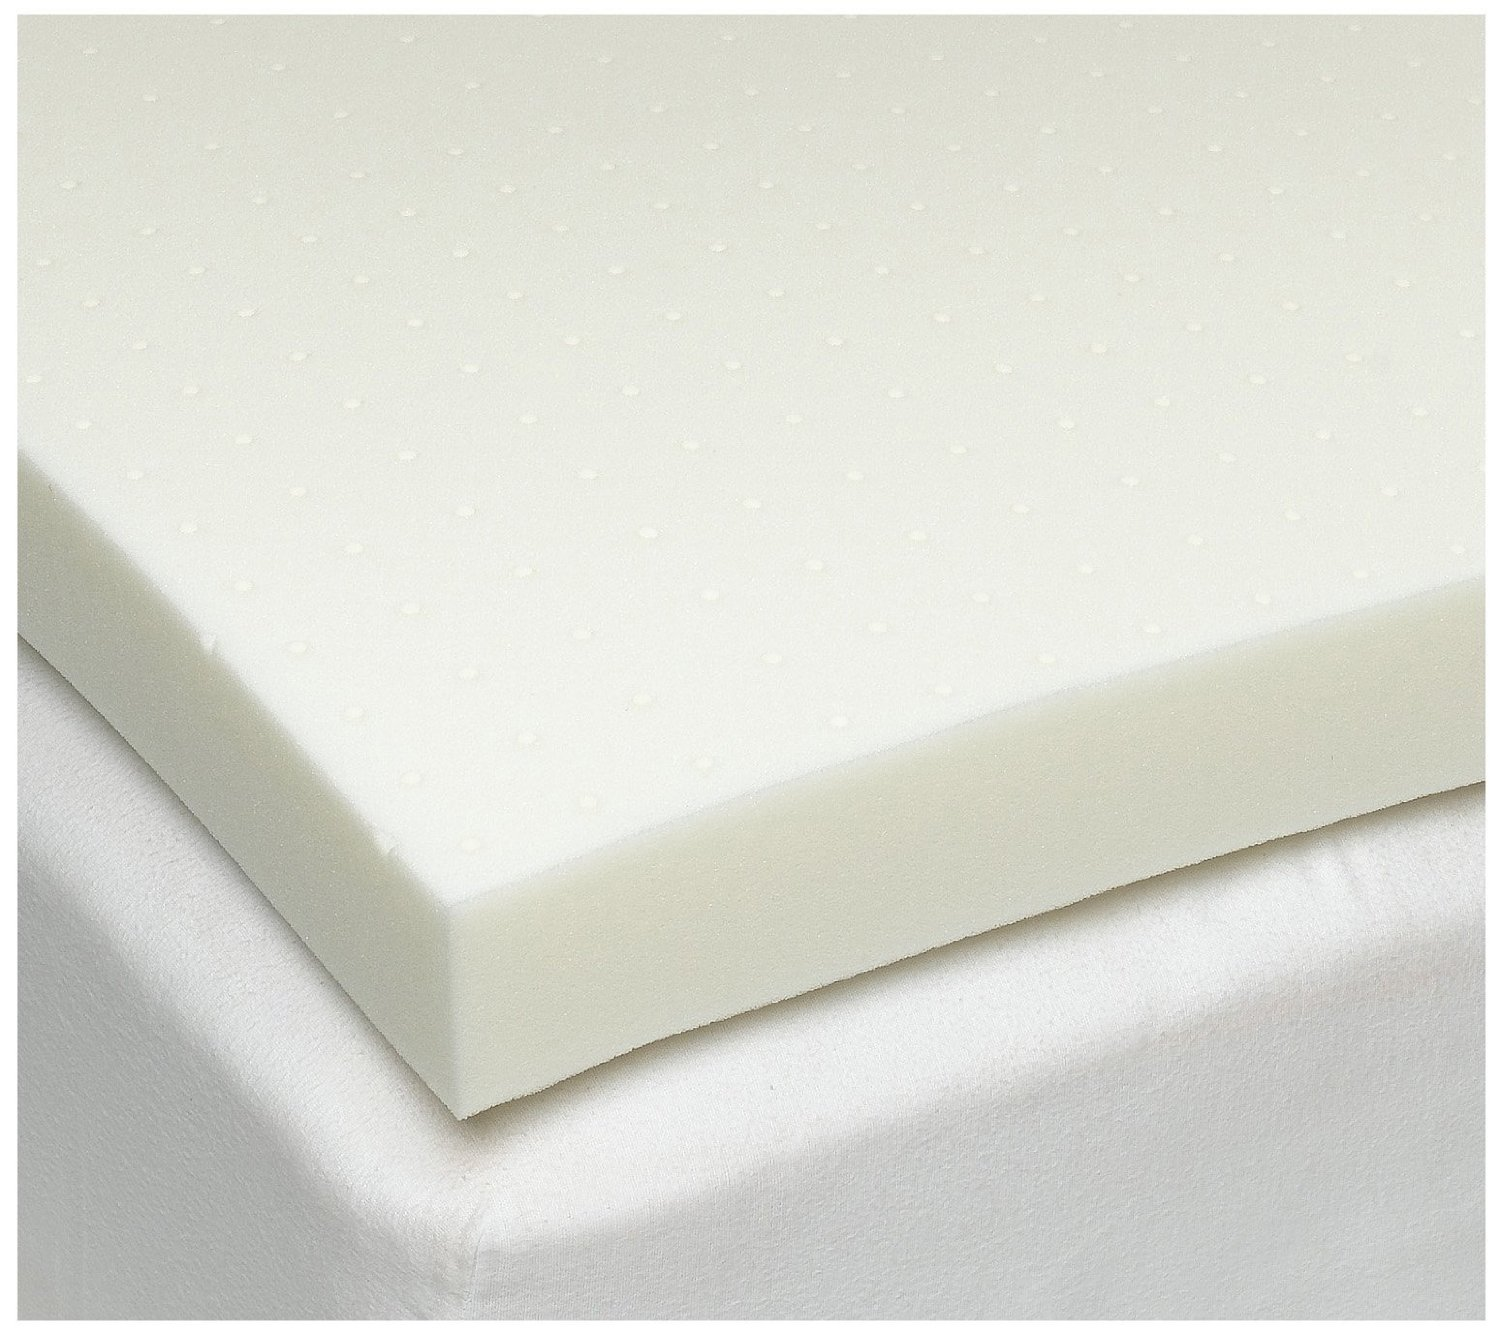 The Sleep Joy 4 Inch Ventilated Memory Foam Mattress Topper Review